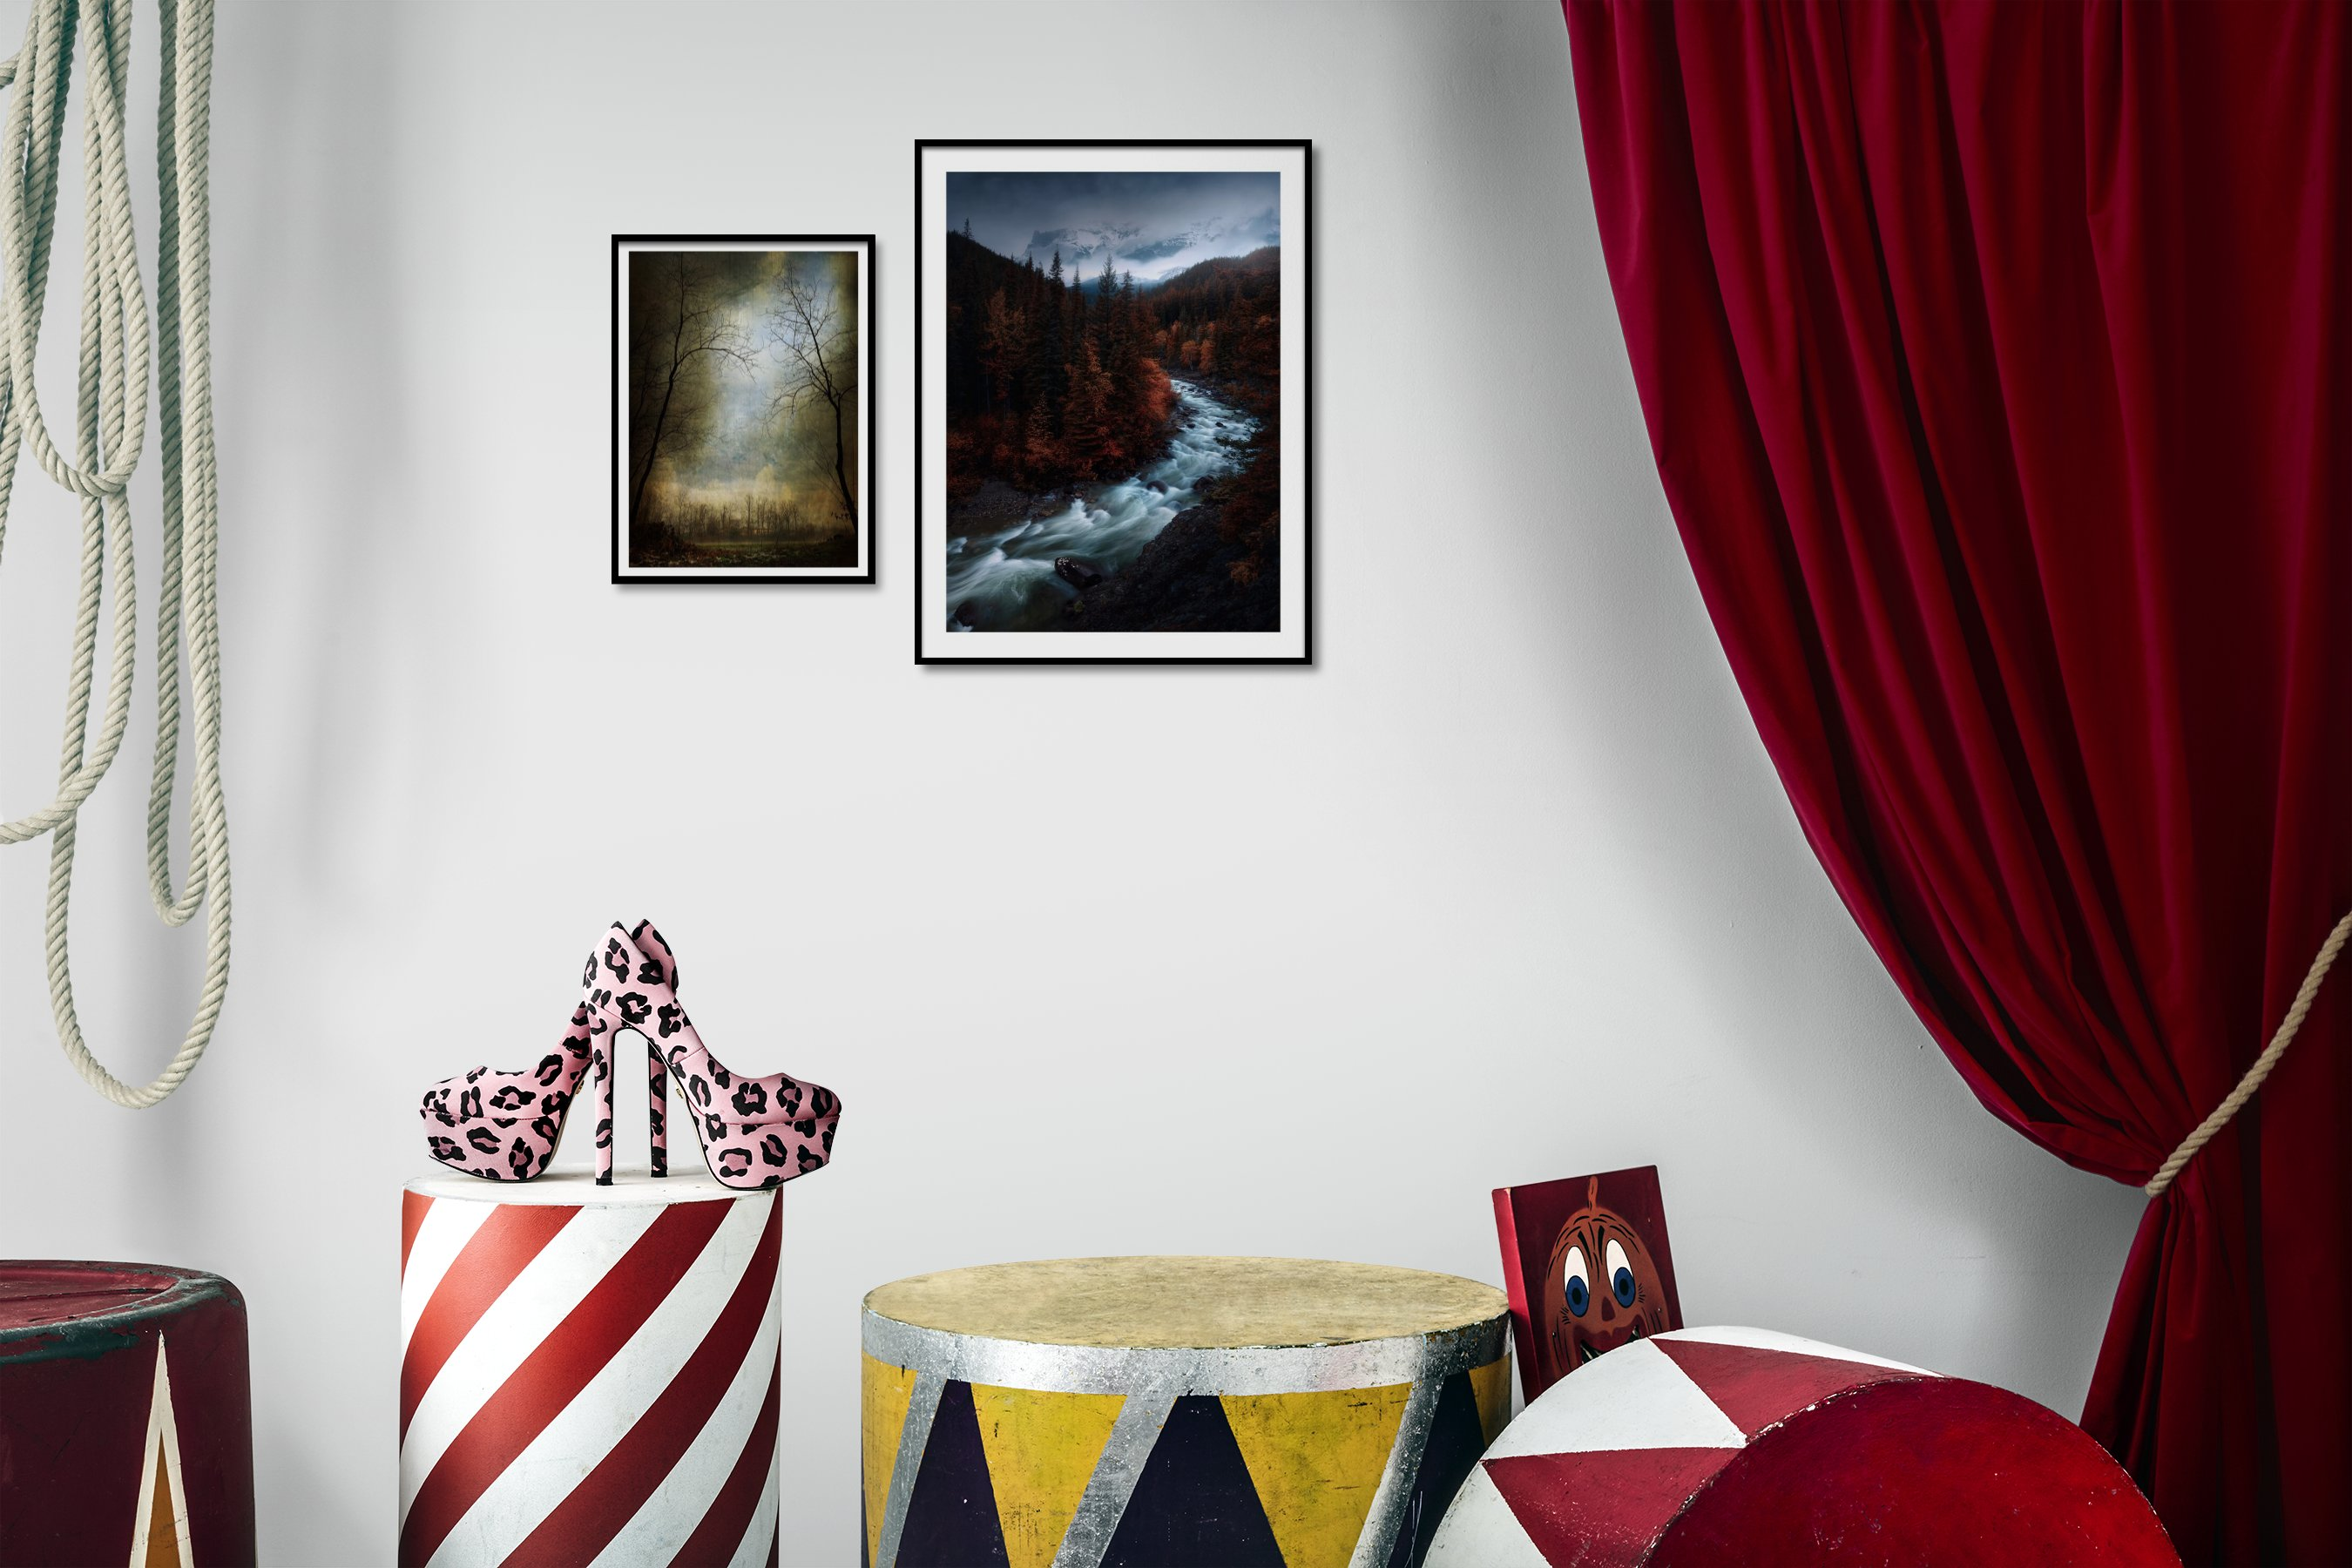 Gallery wall idea with six framed pictures arranged on a wall depicting Nature, Country Life, Artsy, Dark Tones, and For the Minimalist